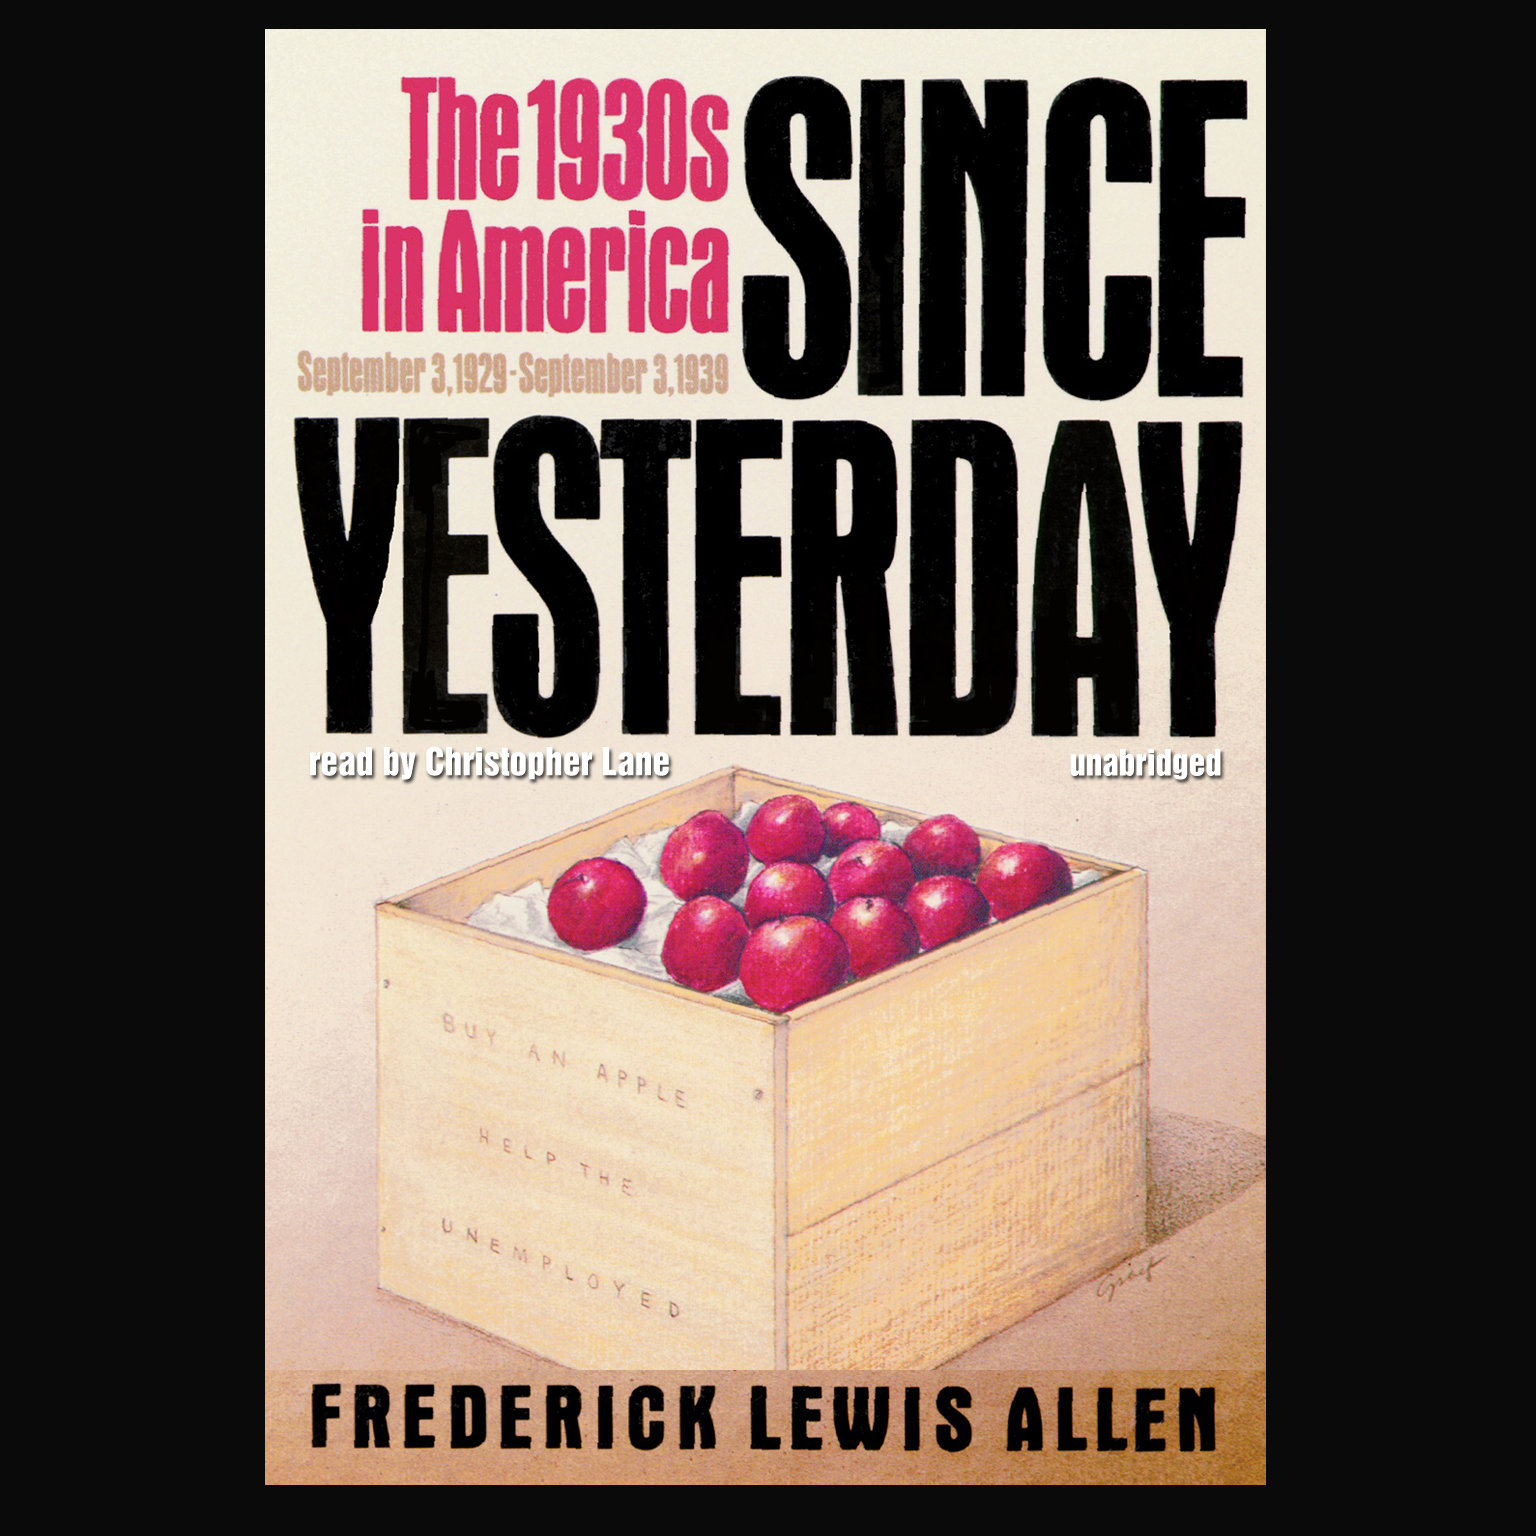 Since Yesterday: The 1930s in America, September 3, 1929–September 3, 1939 Audiobook, by Frederick Lewis Allen